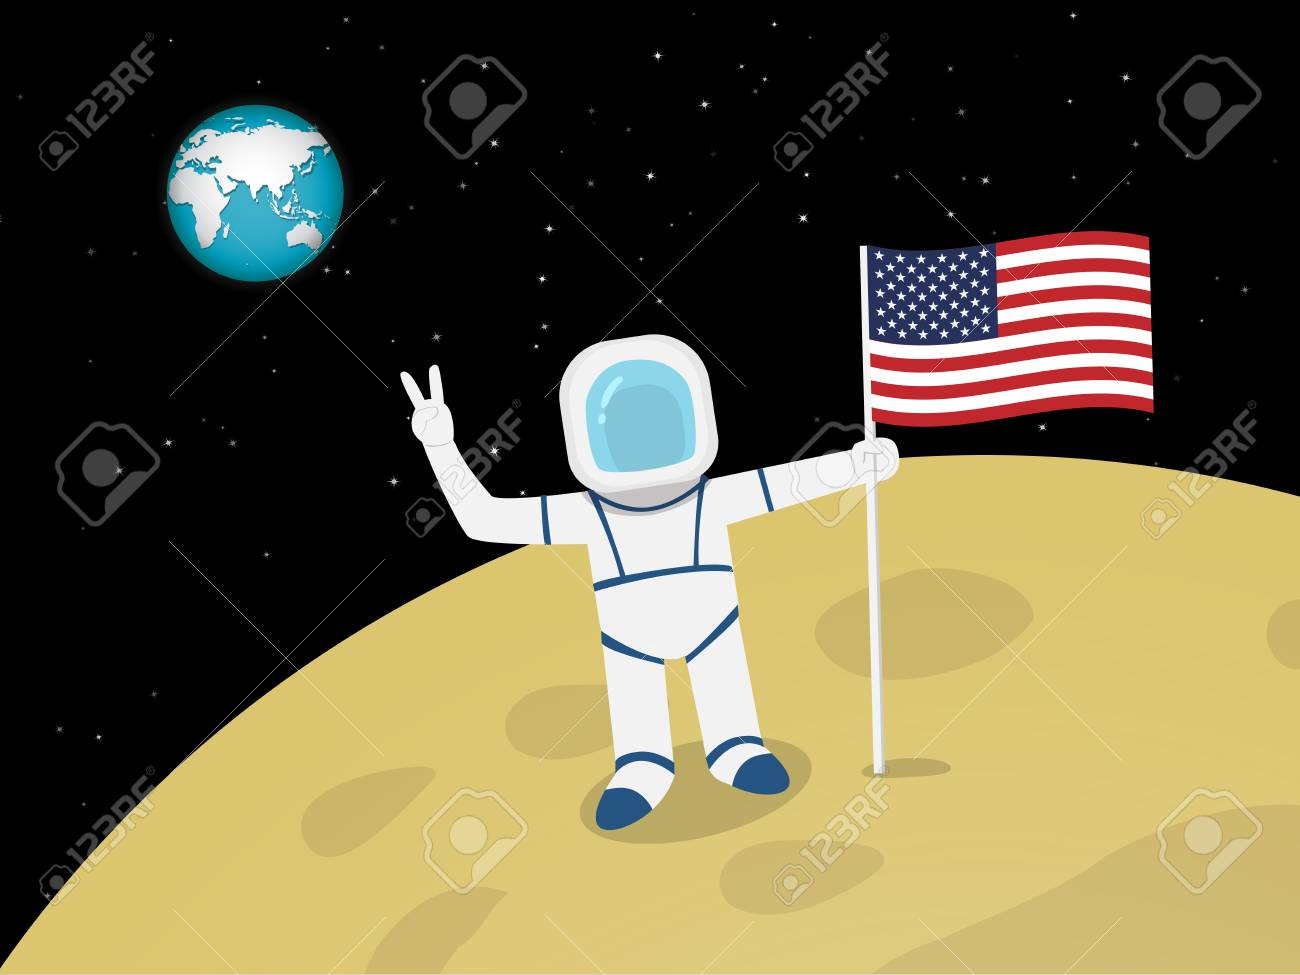 Happy Astronaut on moon surface with US flag, vector design - 92744408